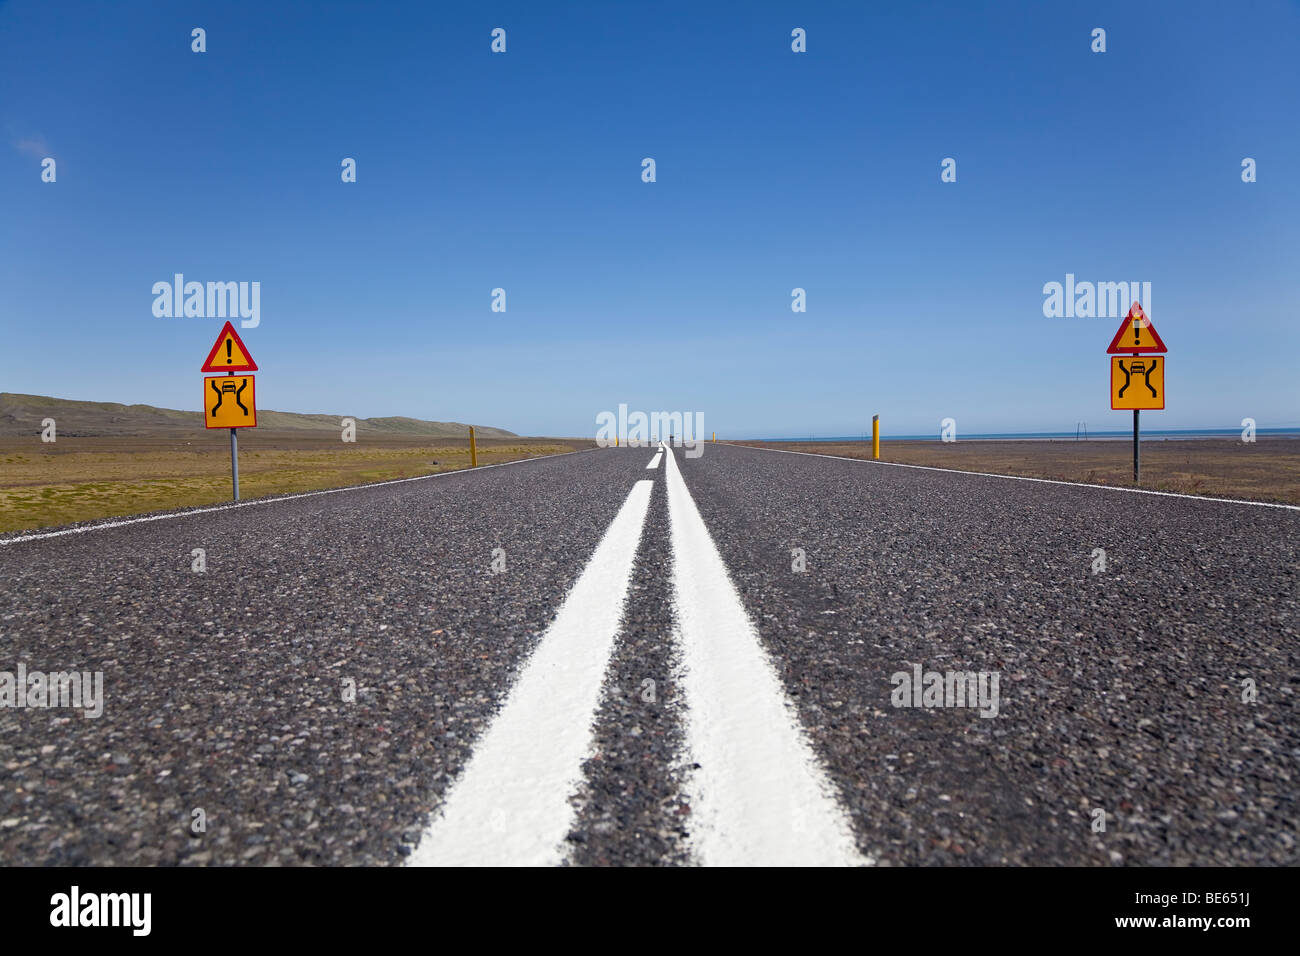 A ground level shot of a wide open road with warning signs - Stock Image